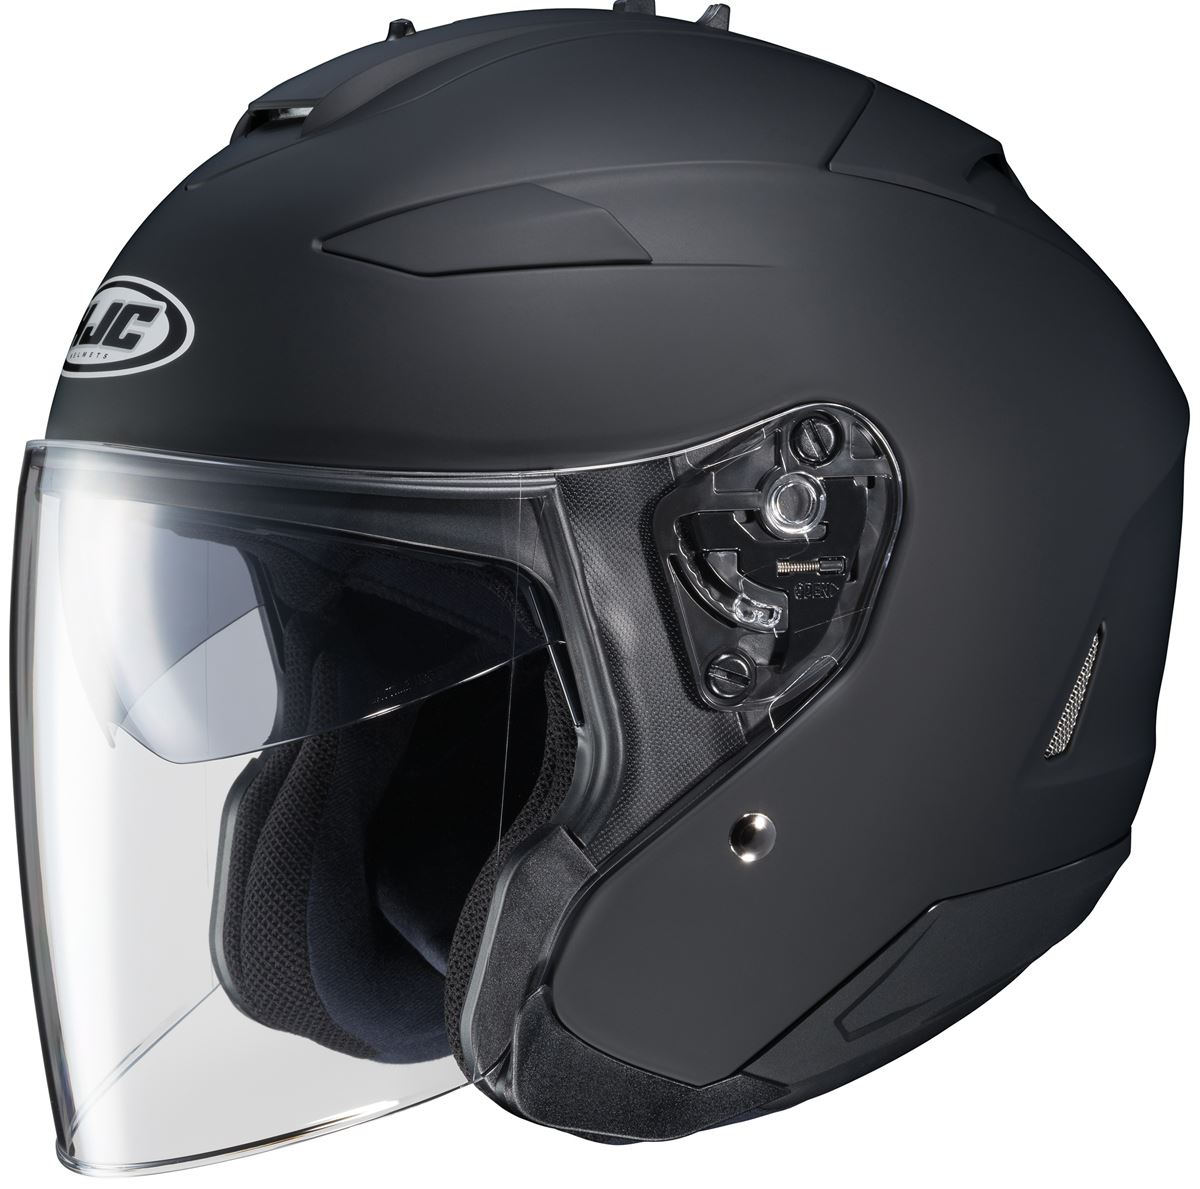 helmet hjc face open 33 motorcycle xl xs ii 2xl